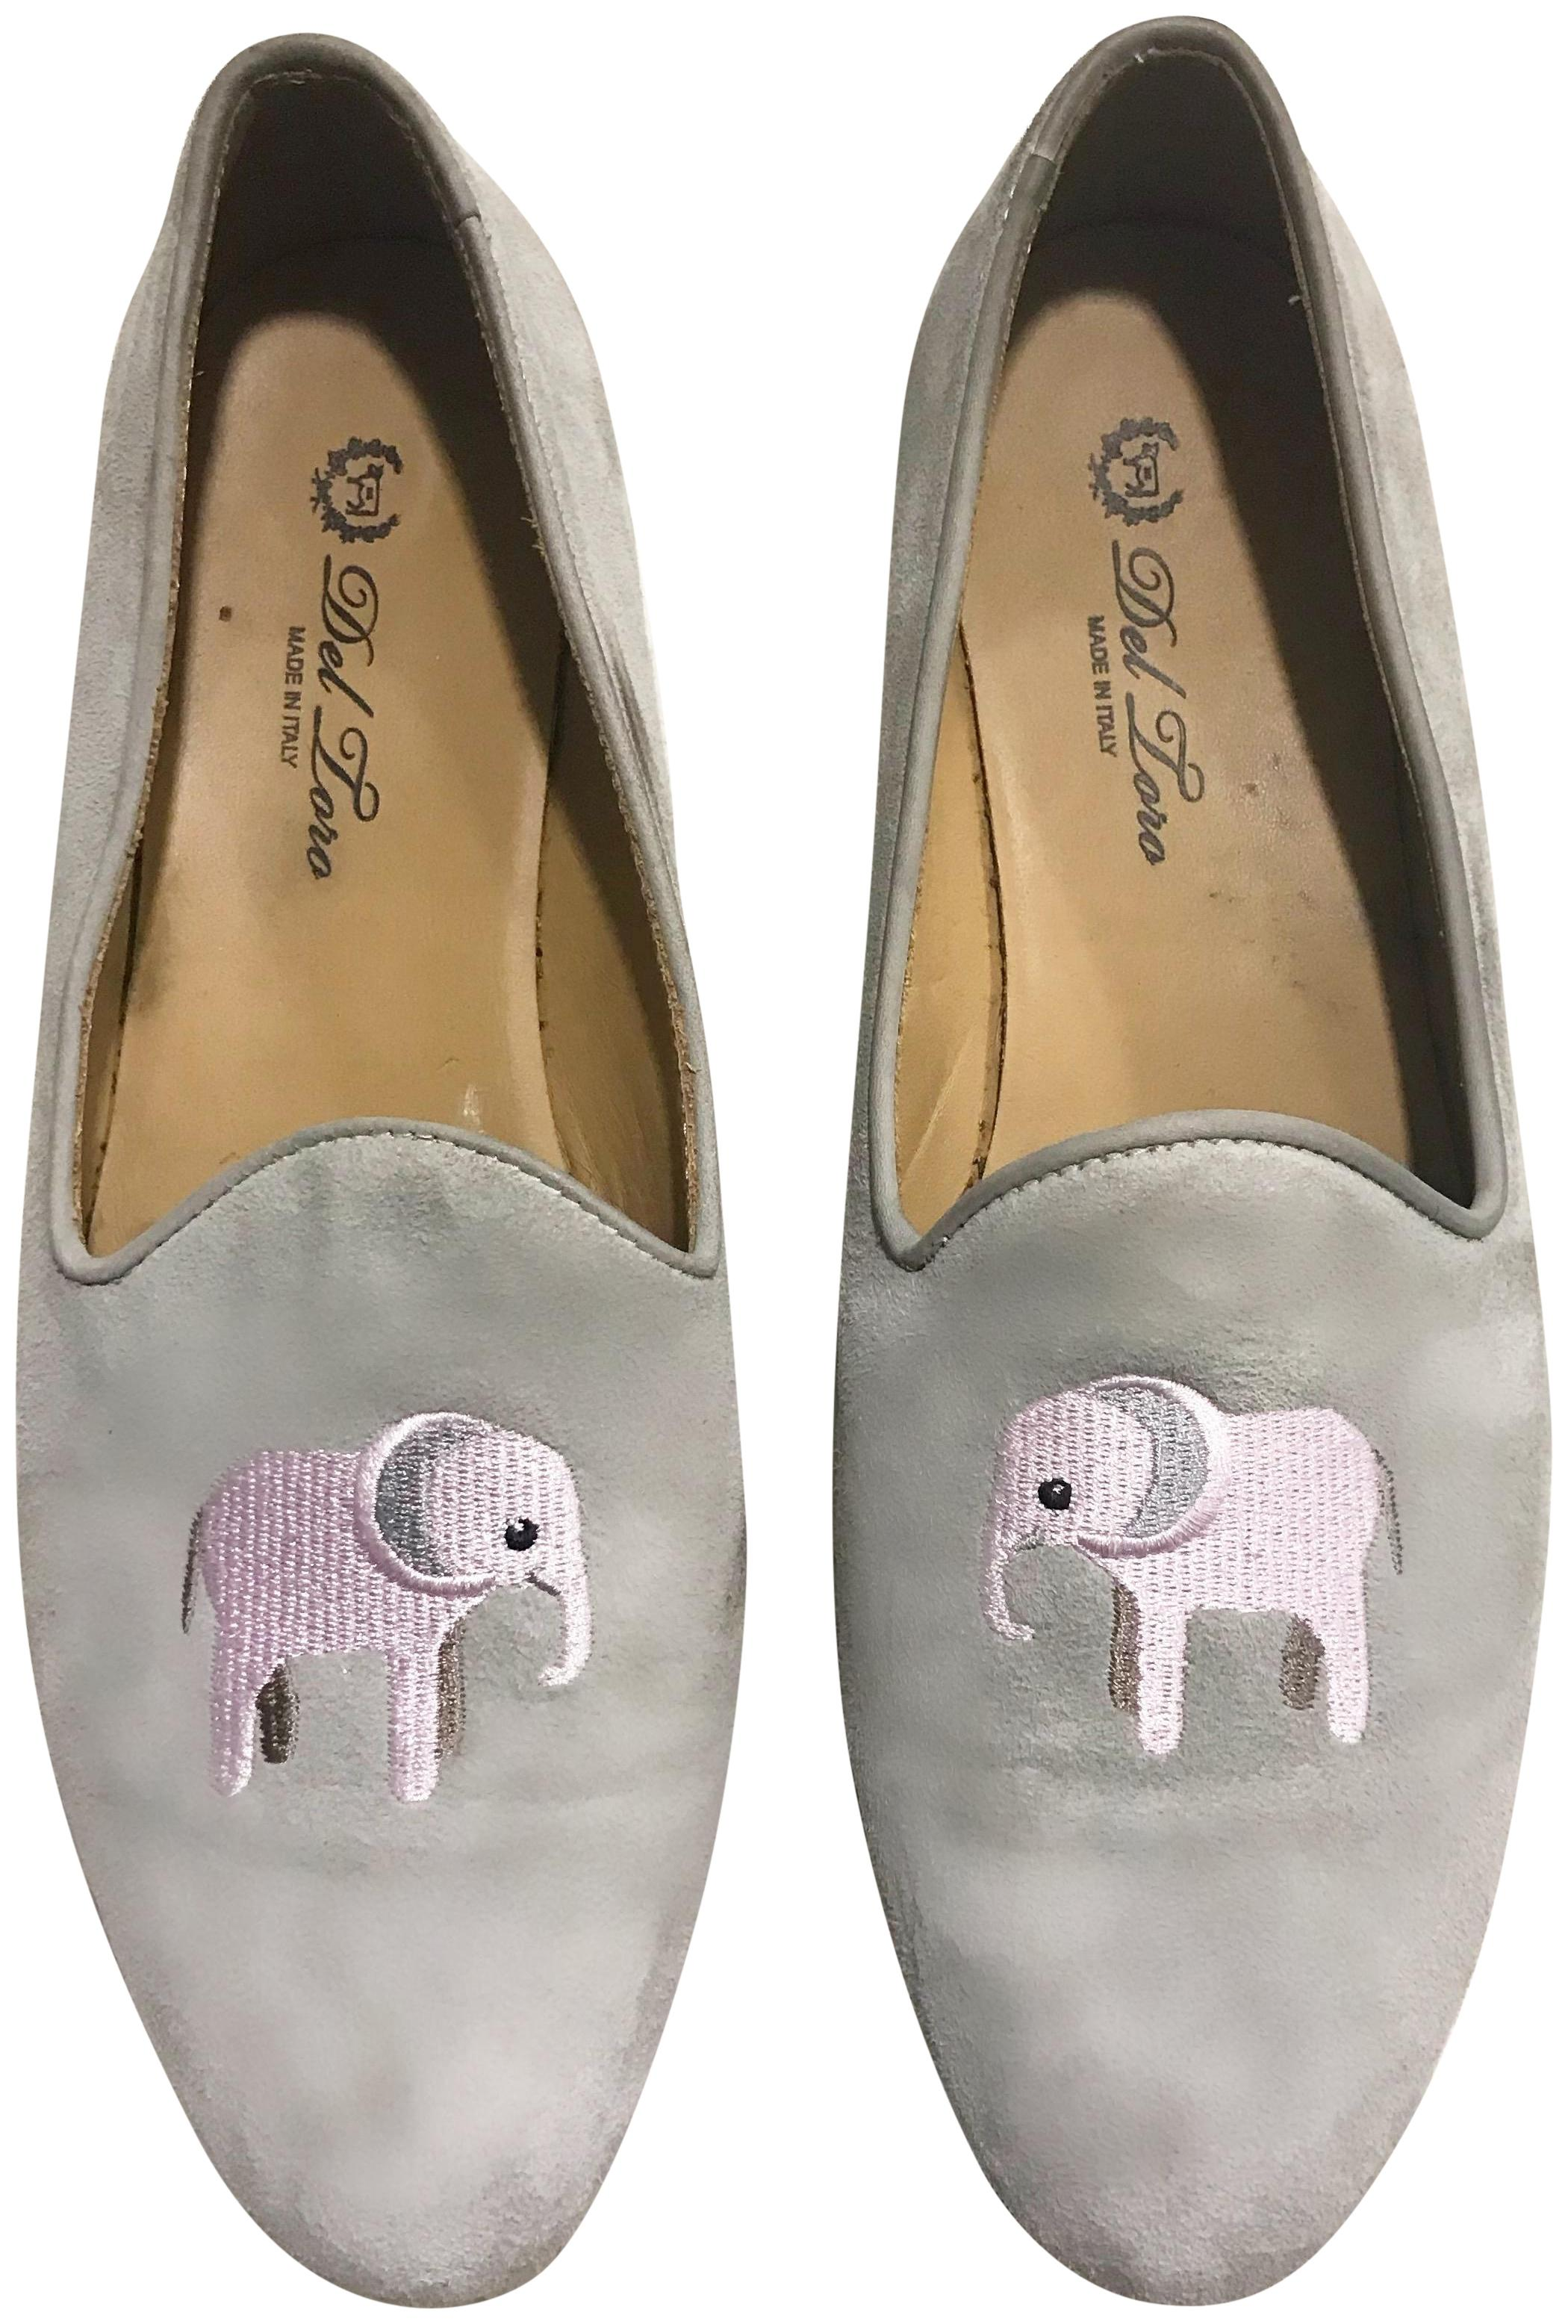 01e7e89a67cb1e Del Toro Grey Women s Women s Women s Slippers Flats Size EU 41 (Approx. US  11